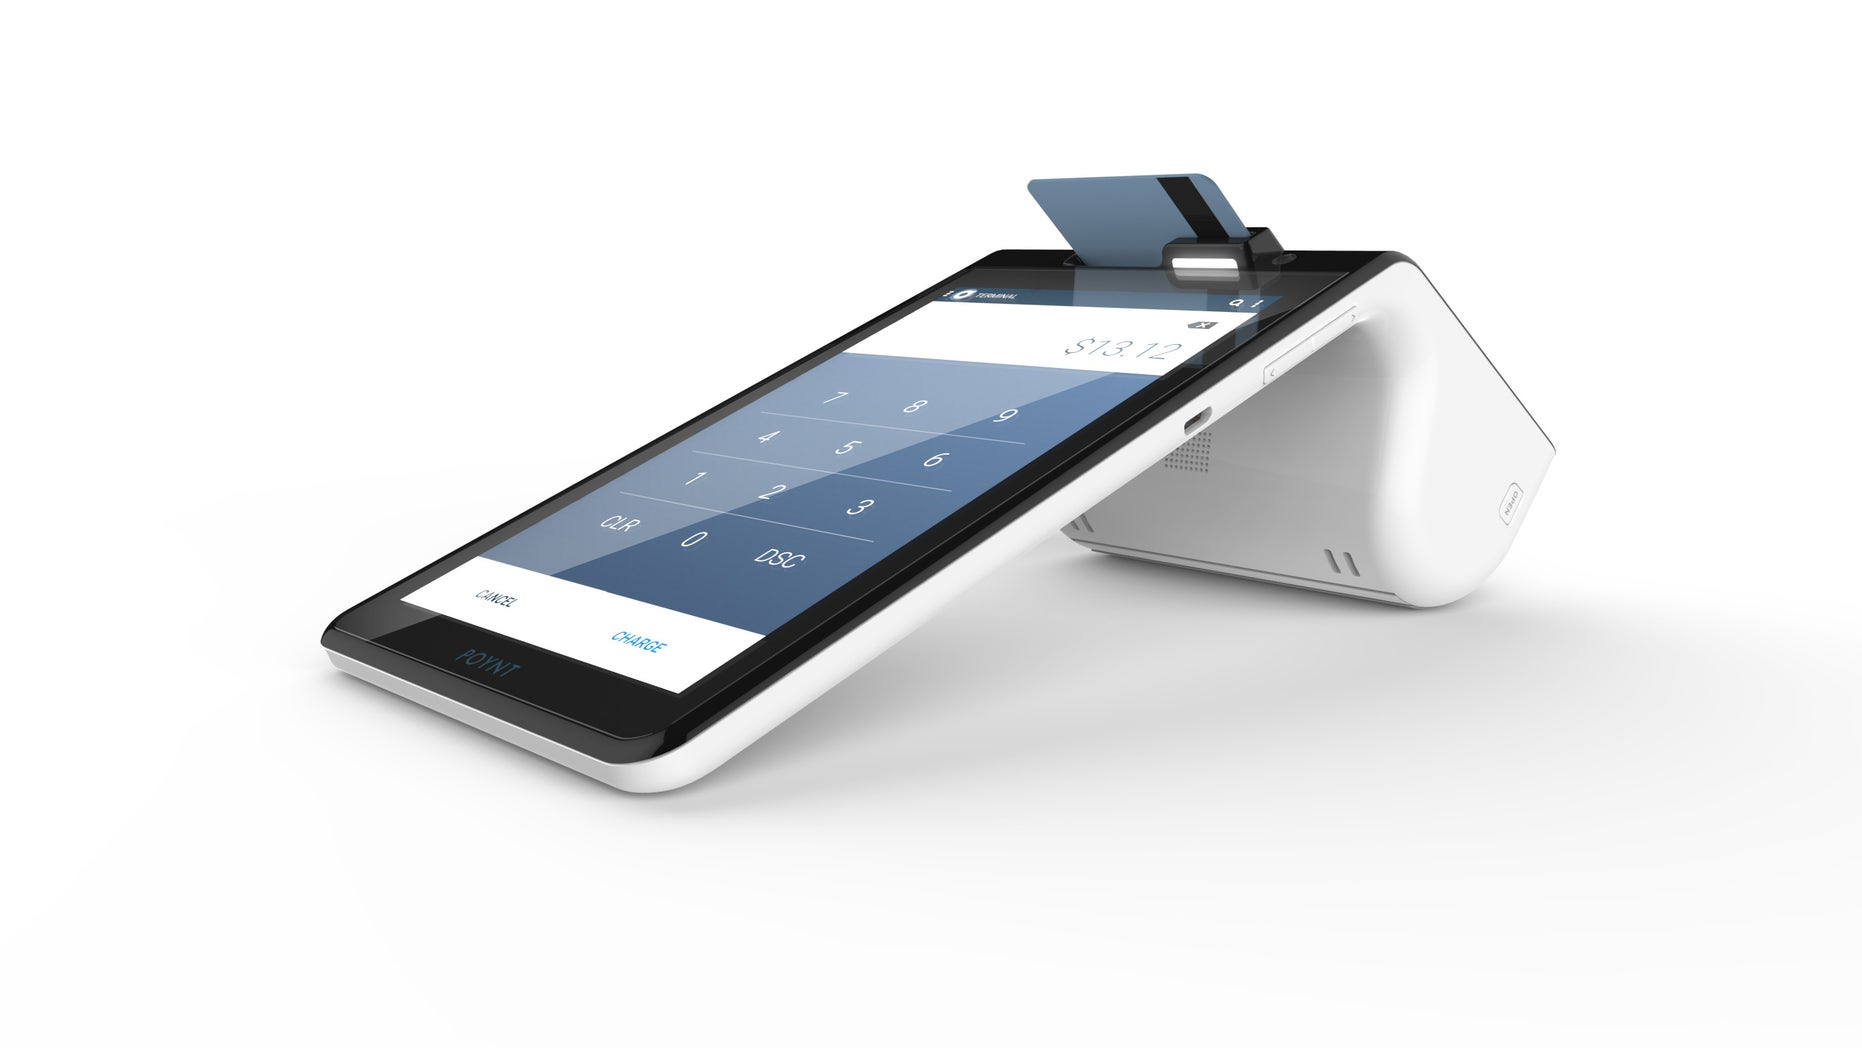 This product image provided by Poynt shows the new Poynt 'smart' payment terminal.